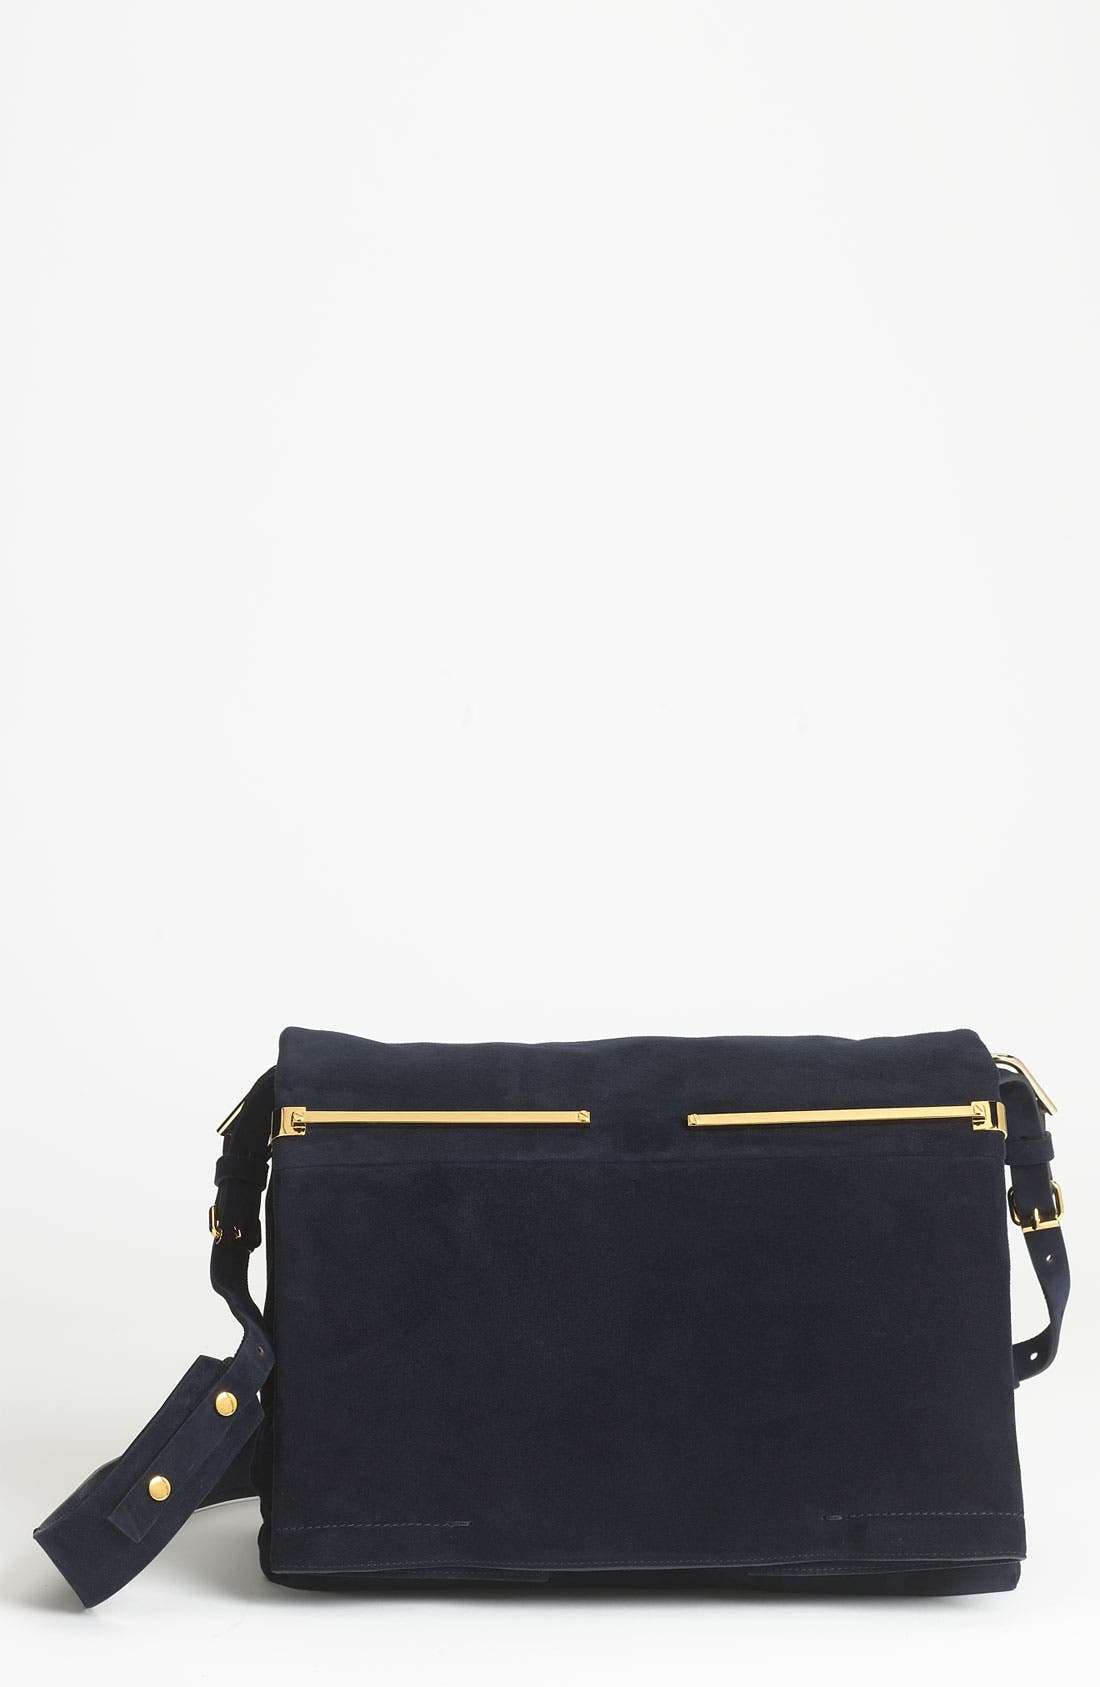 Alternate Image 1 Selected - Lanvin 'Folding' Shoulder Bag